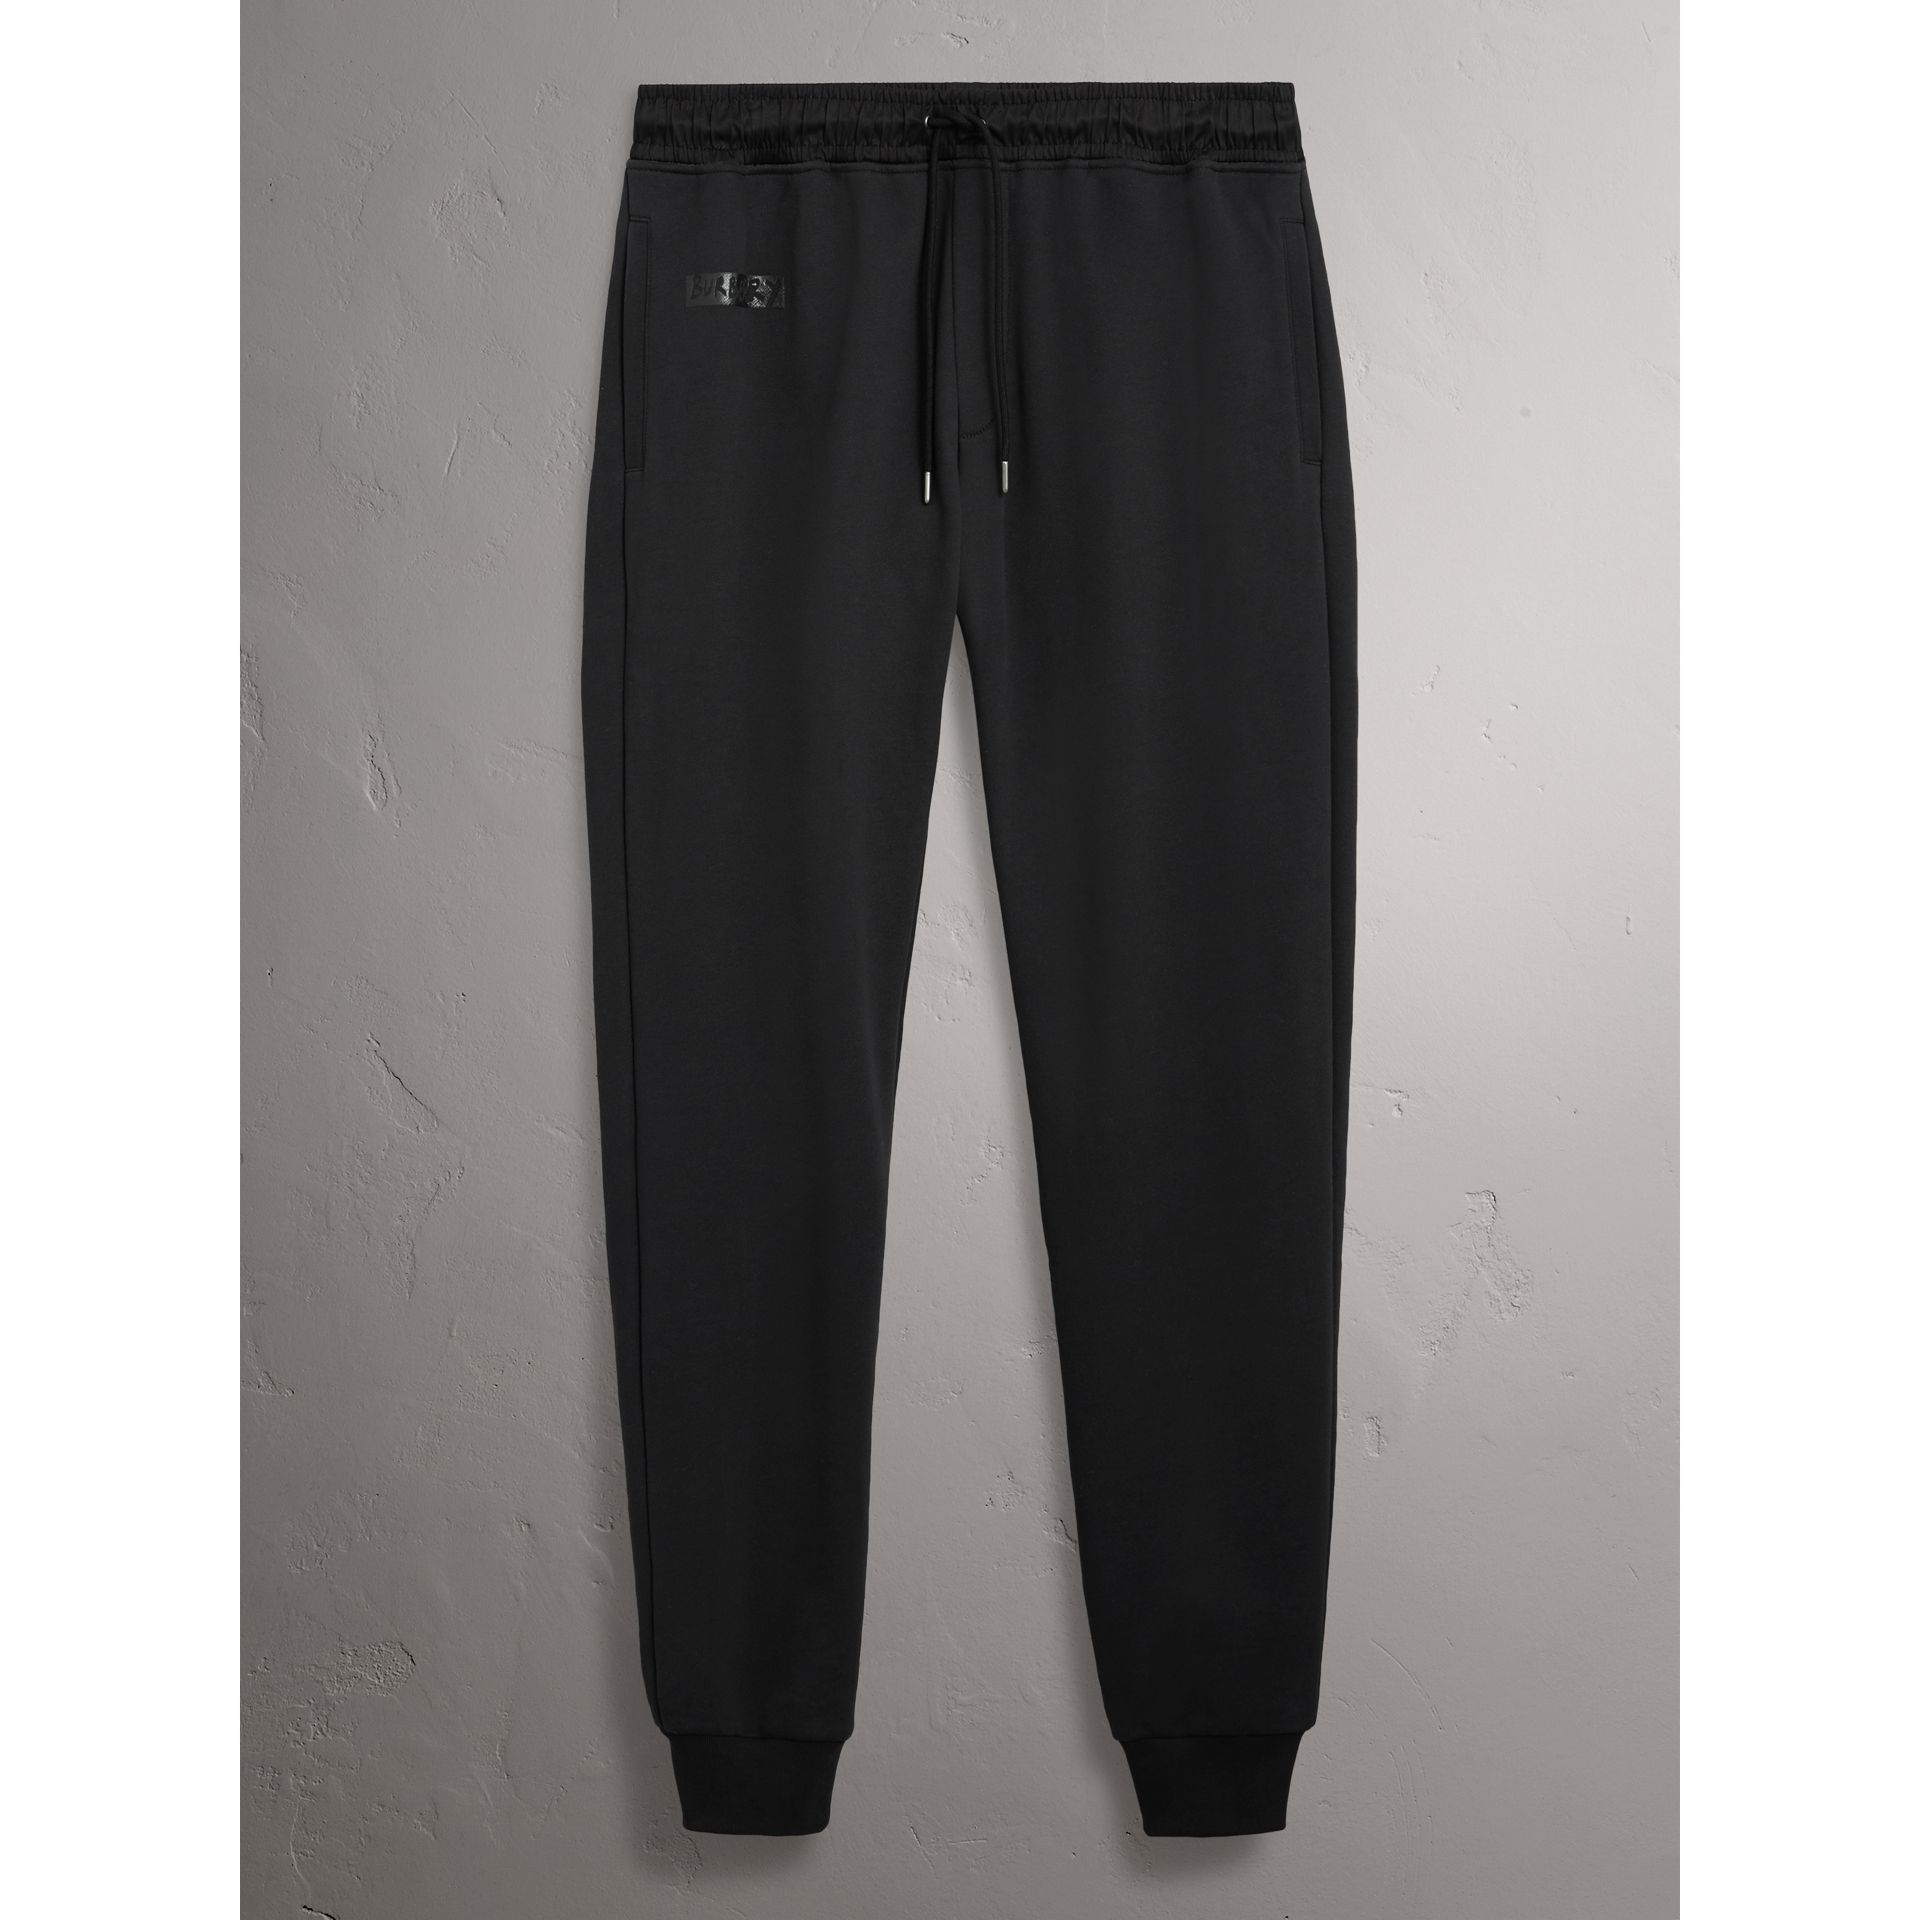 Burberry x Kris Wu Sweatpants in Black - Men | Burberry United Kingdom - gallery image 3